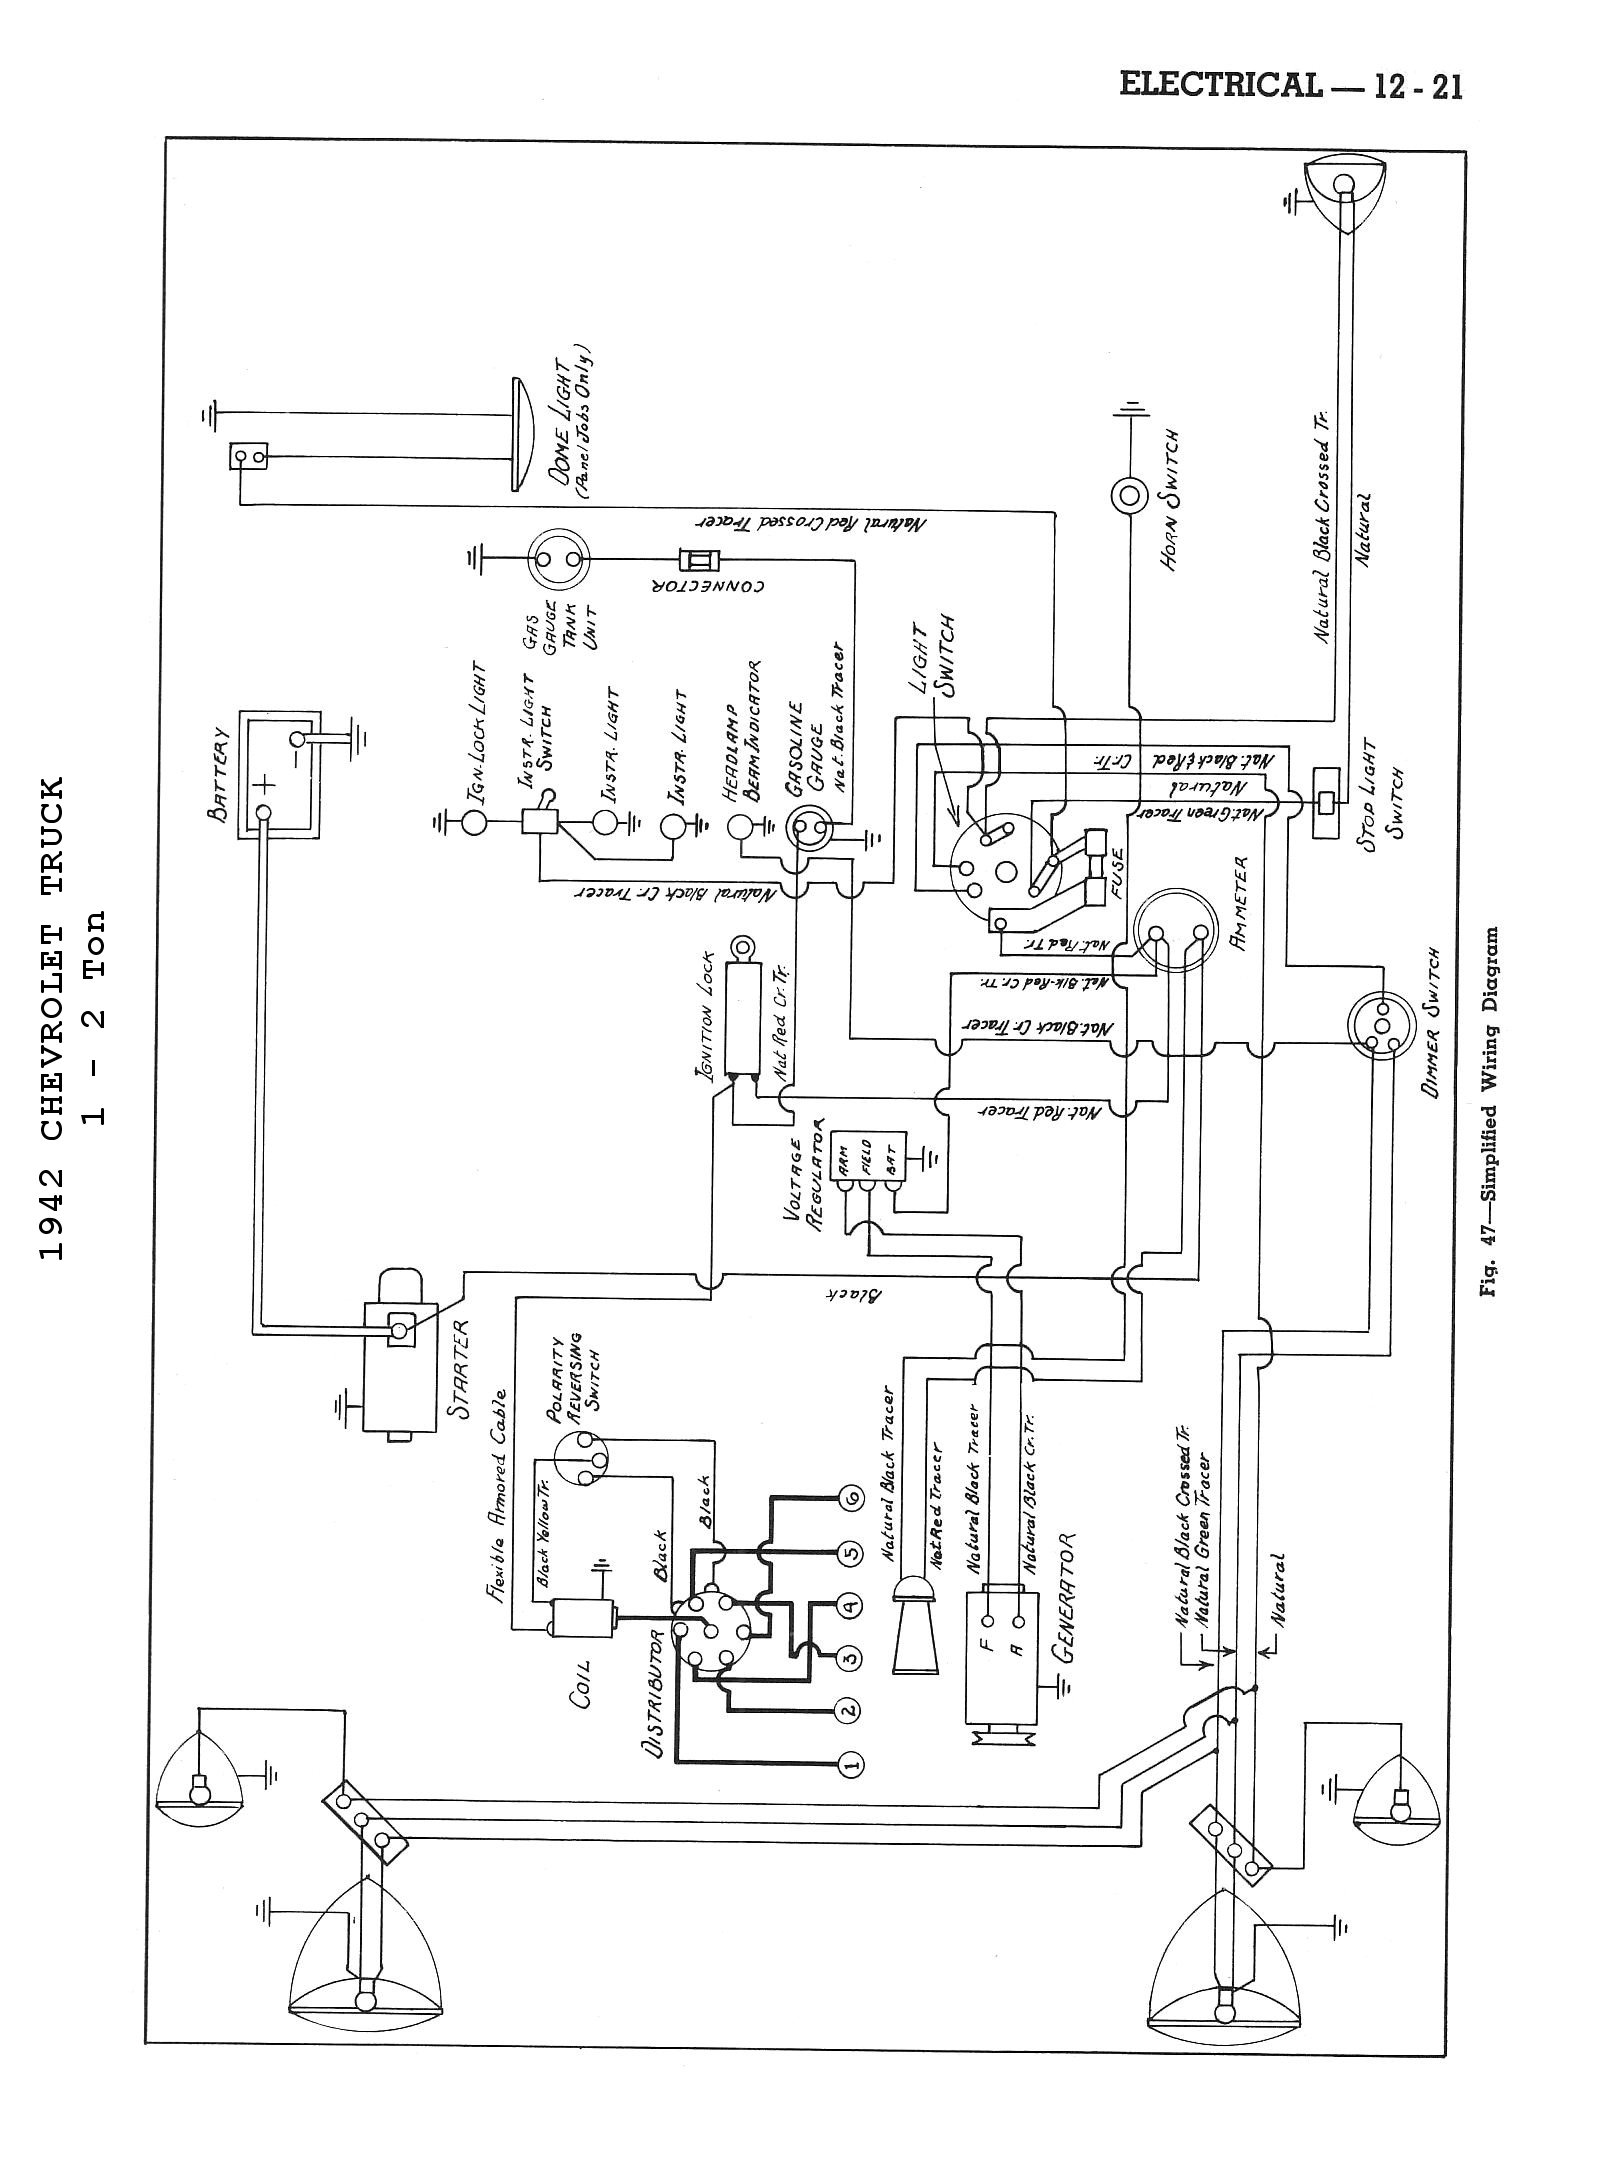 42cm4x2t1221 chevy wiring diagrams 57 chevy truck wiring harness at n-0.co